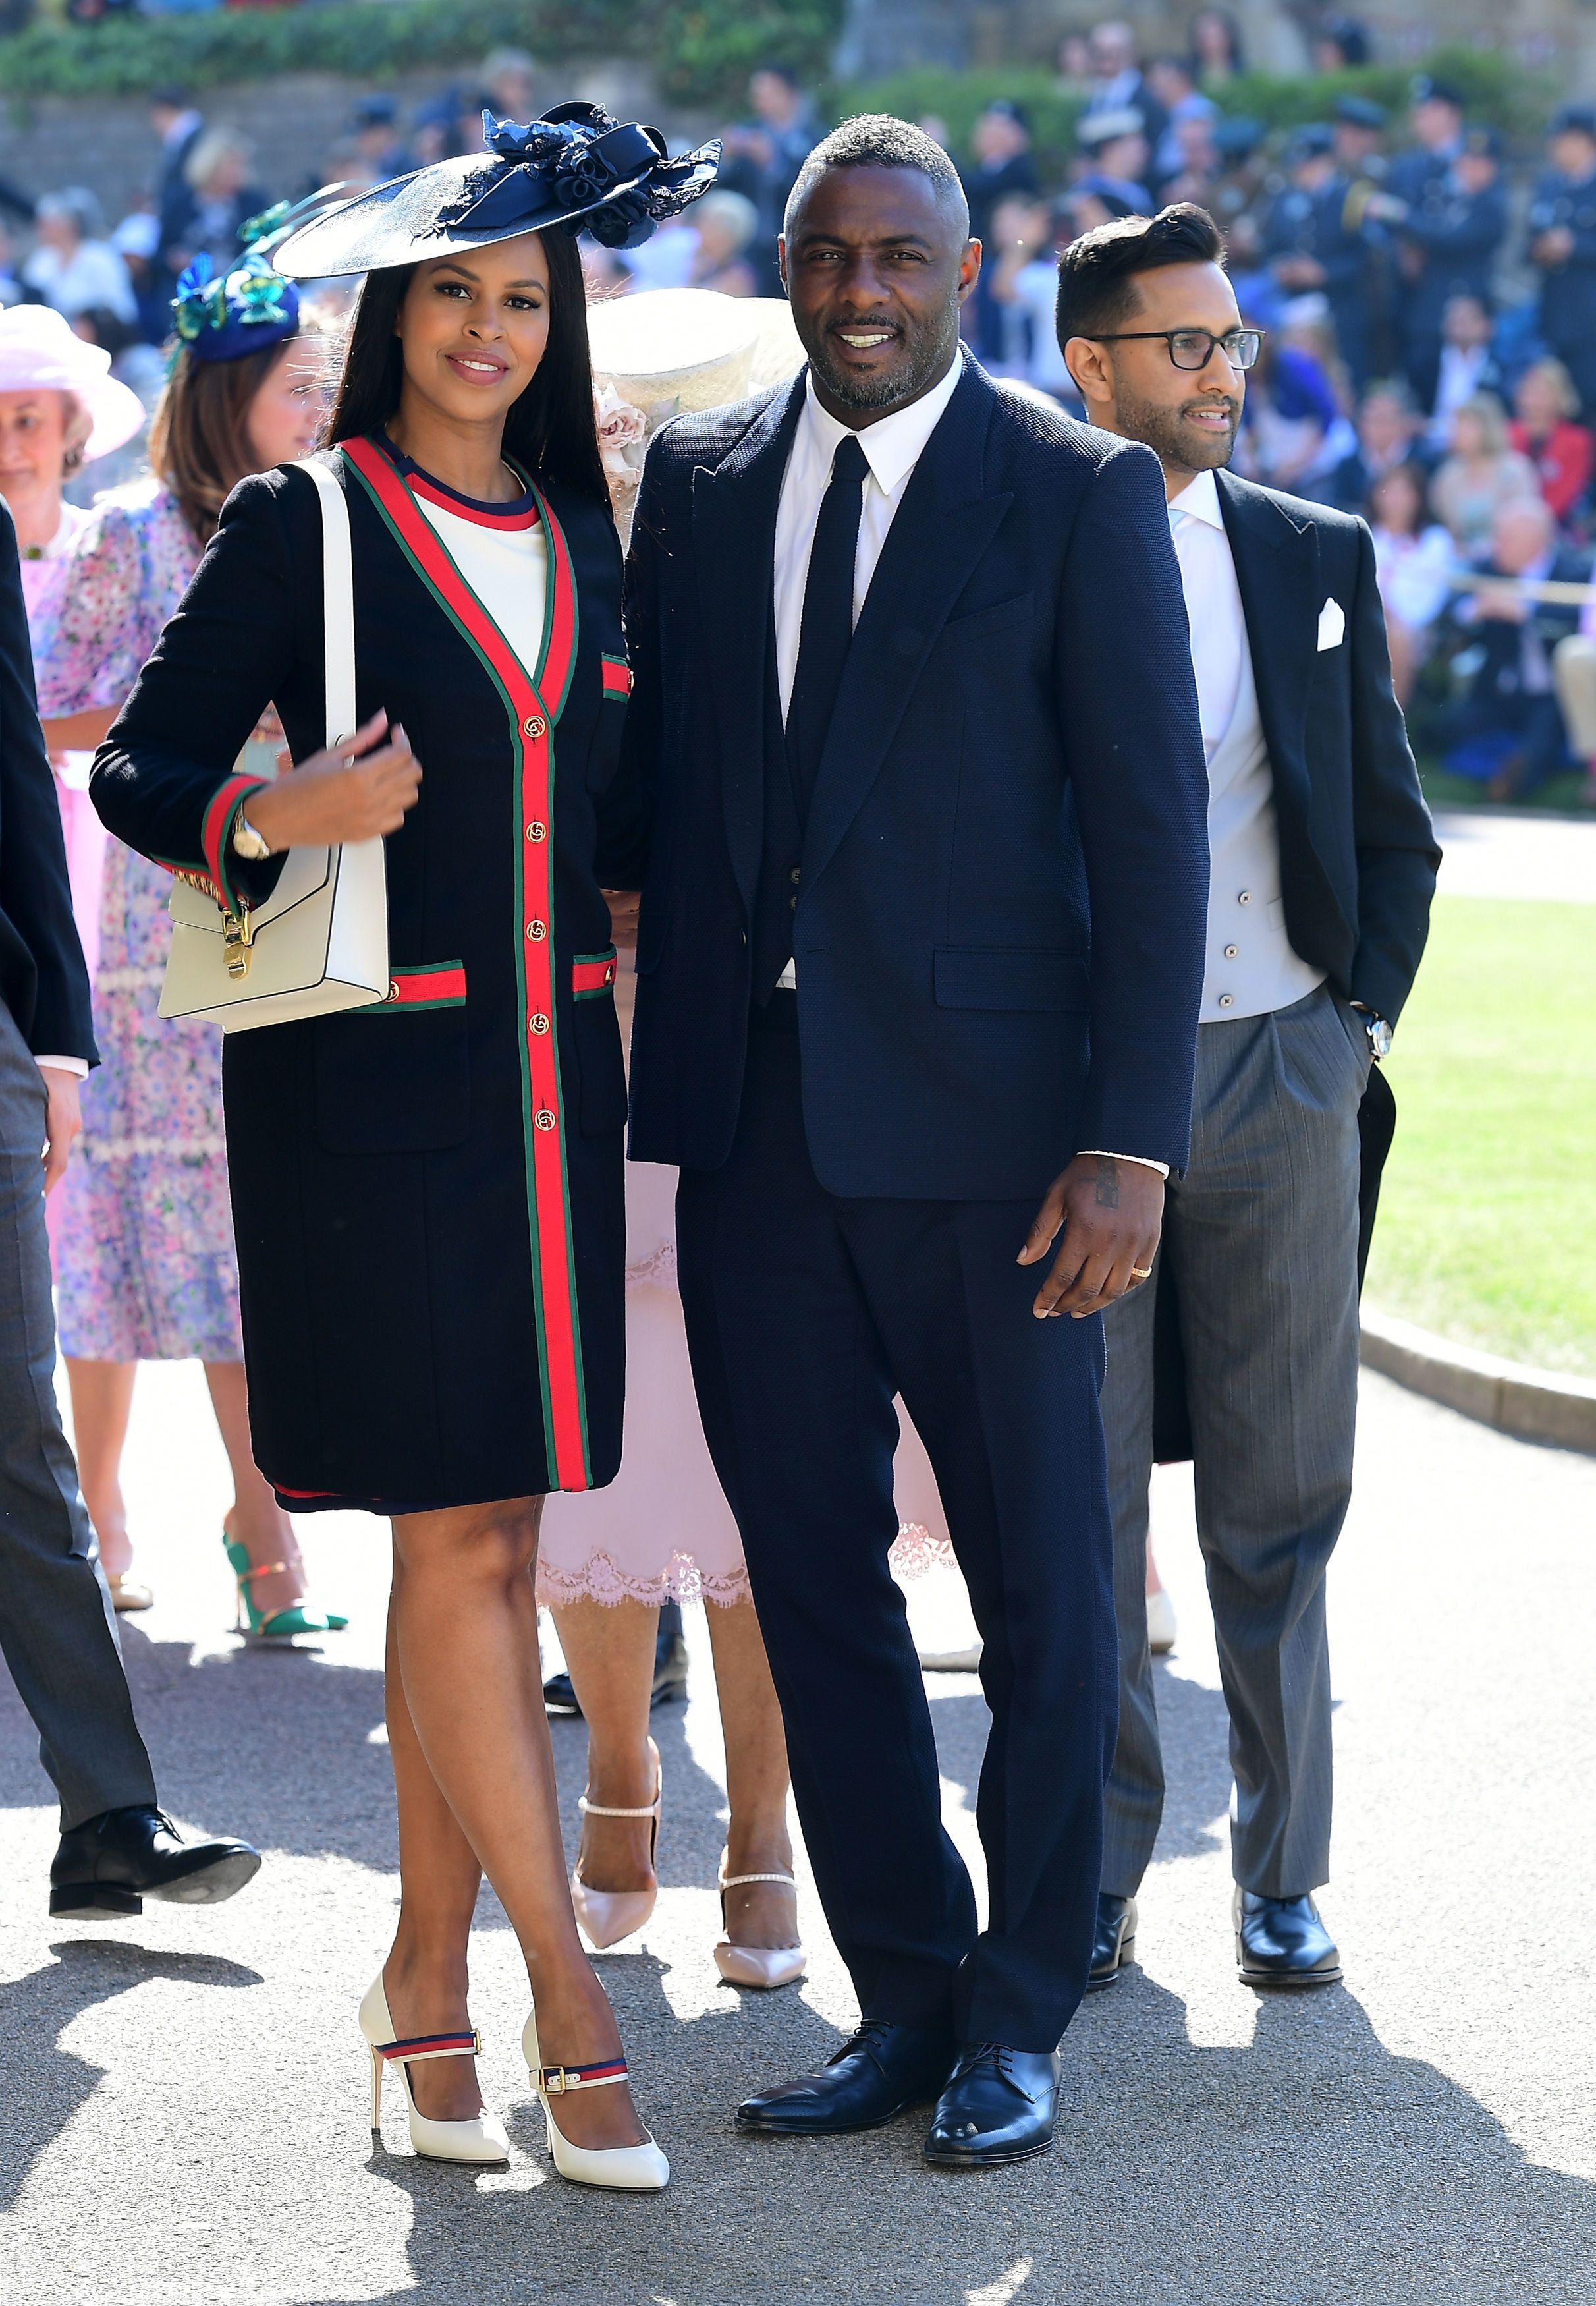 Elba's model fiance is dressed in head-to-toe Gucci; the actor is wearing a navy Givenchy suit.